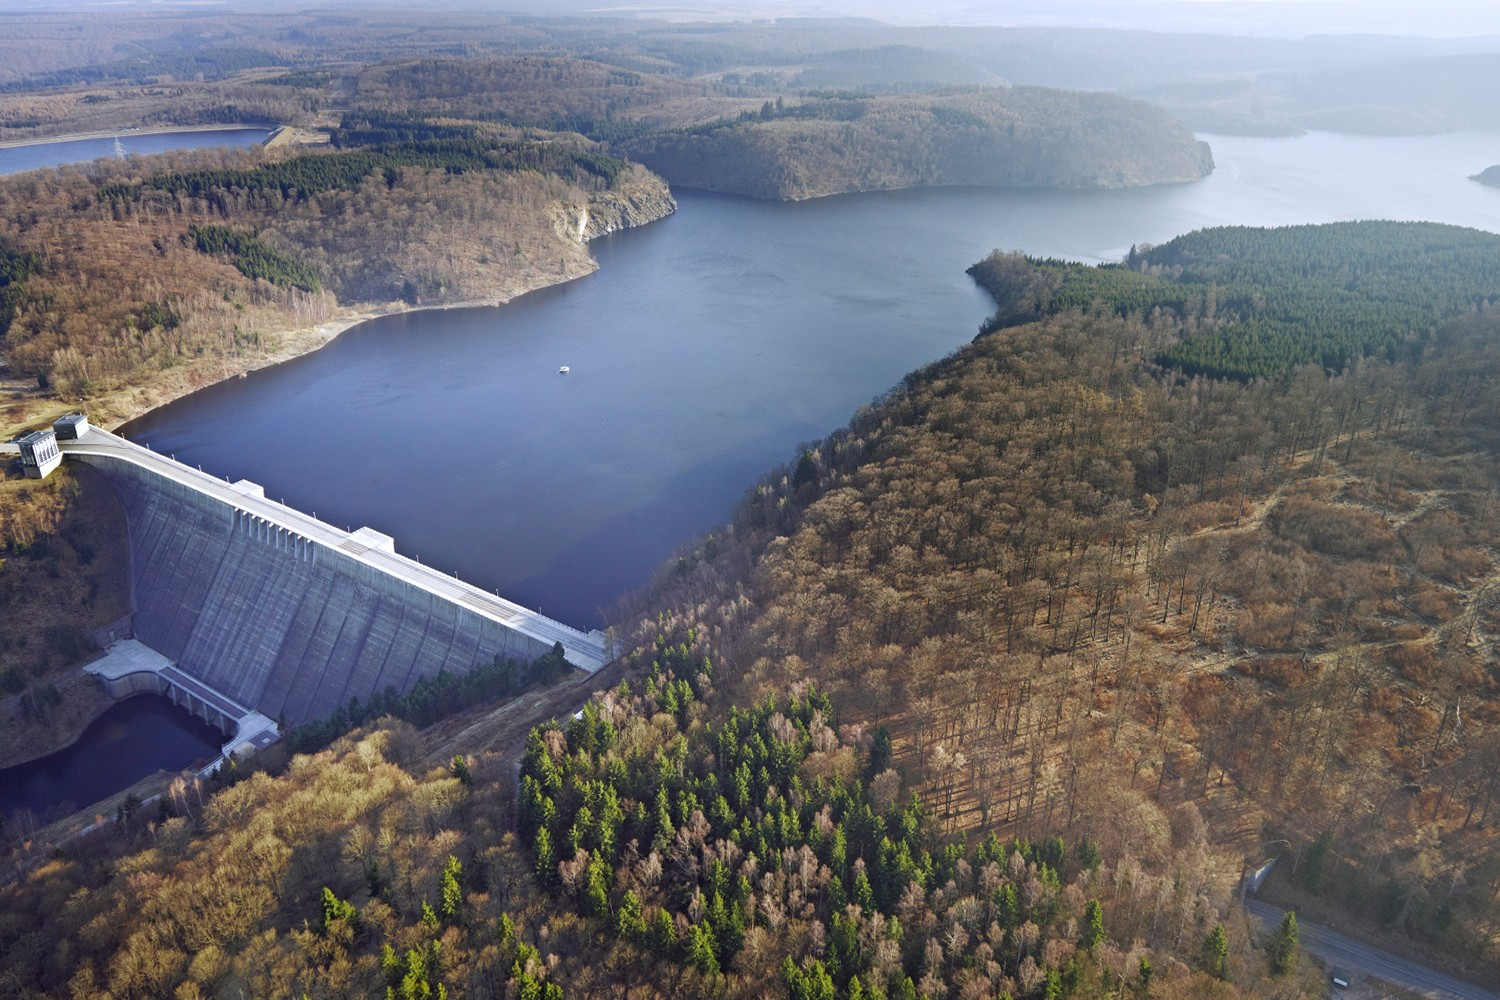 The Rappbode Reservoir in the Harz region in Germany. Photo: André Künzelmann / UFZ